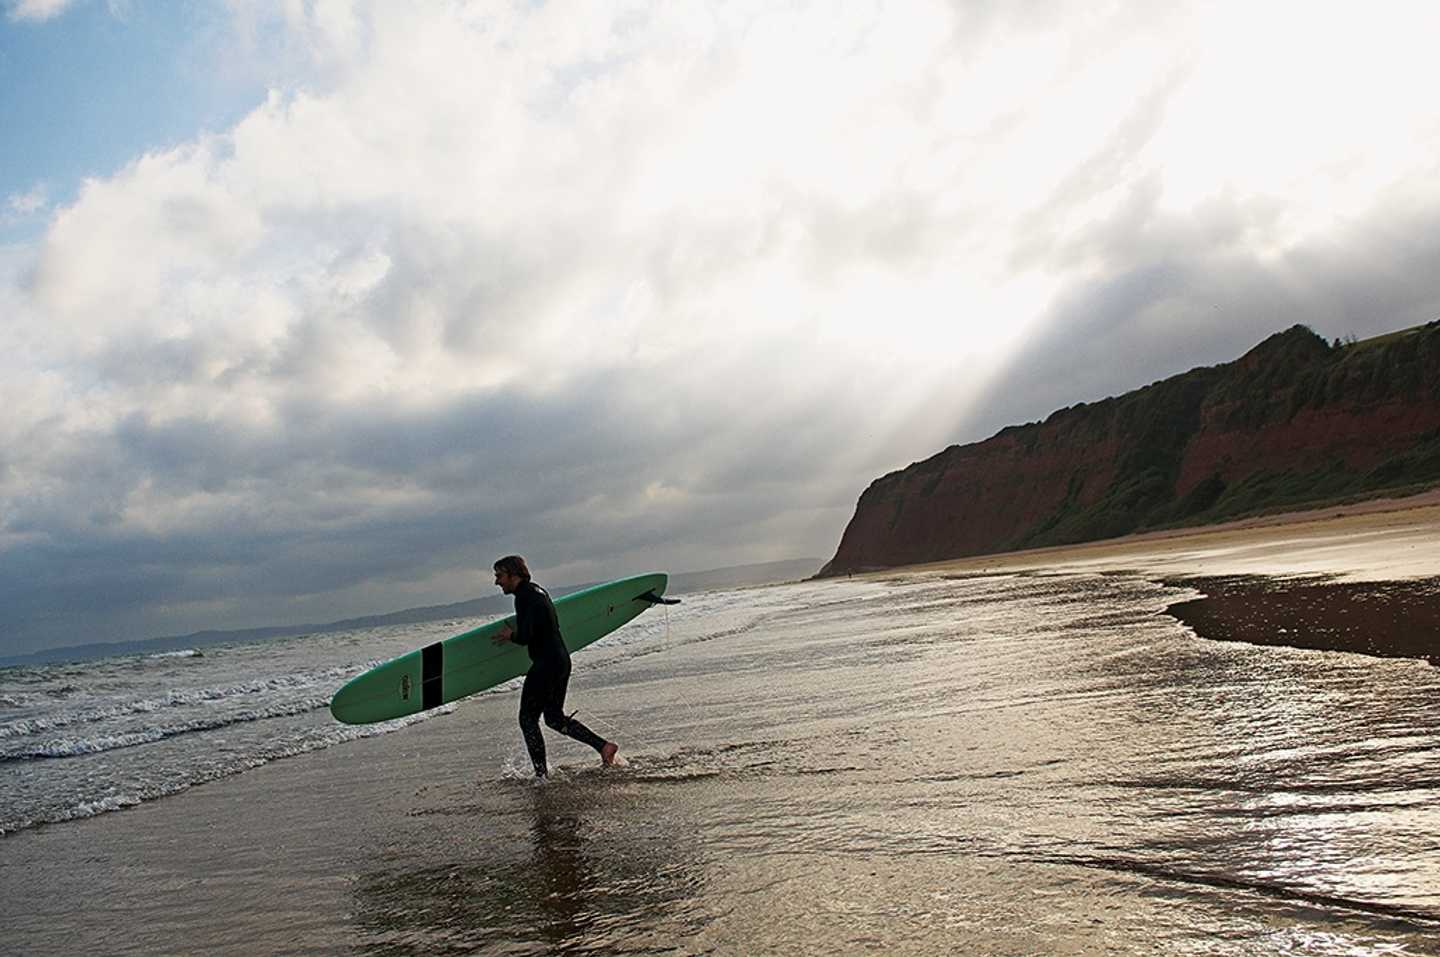 A surfer at Devon Cliffs